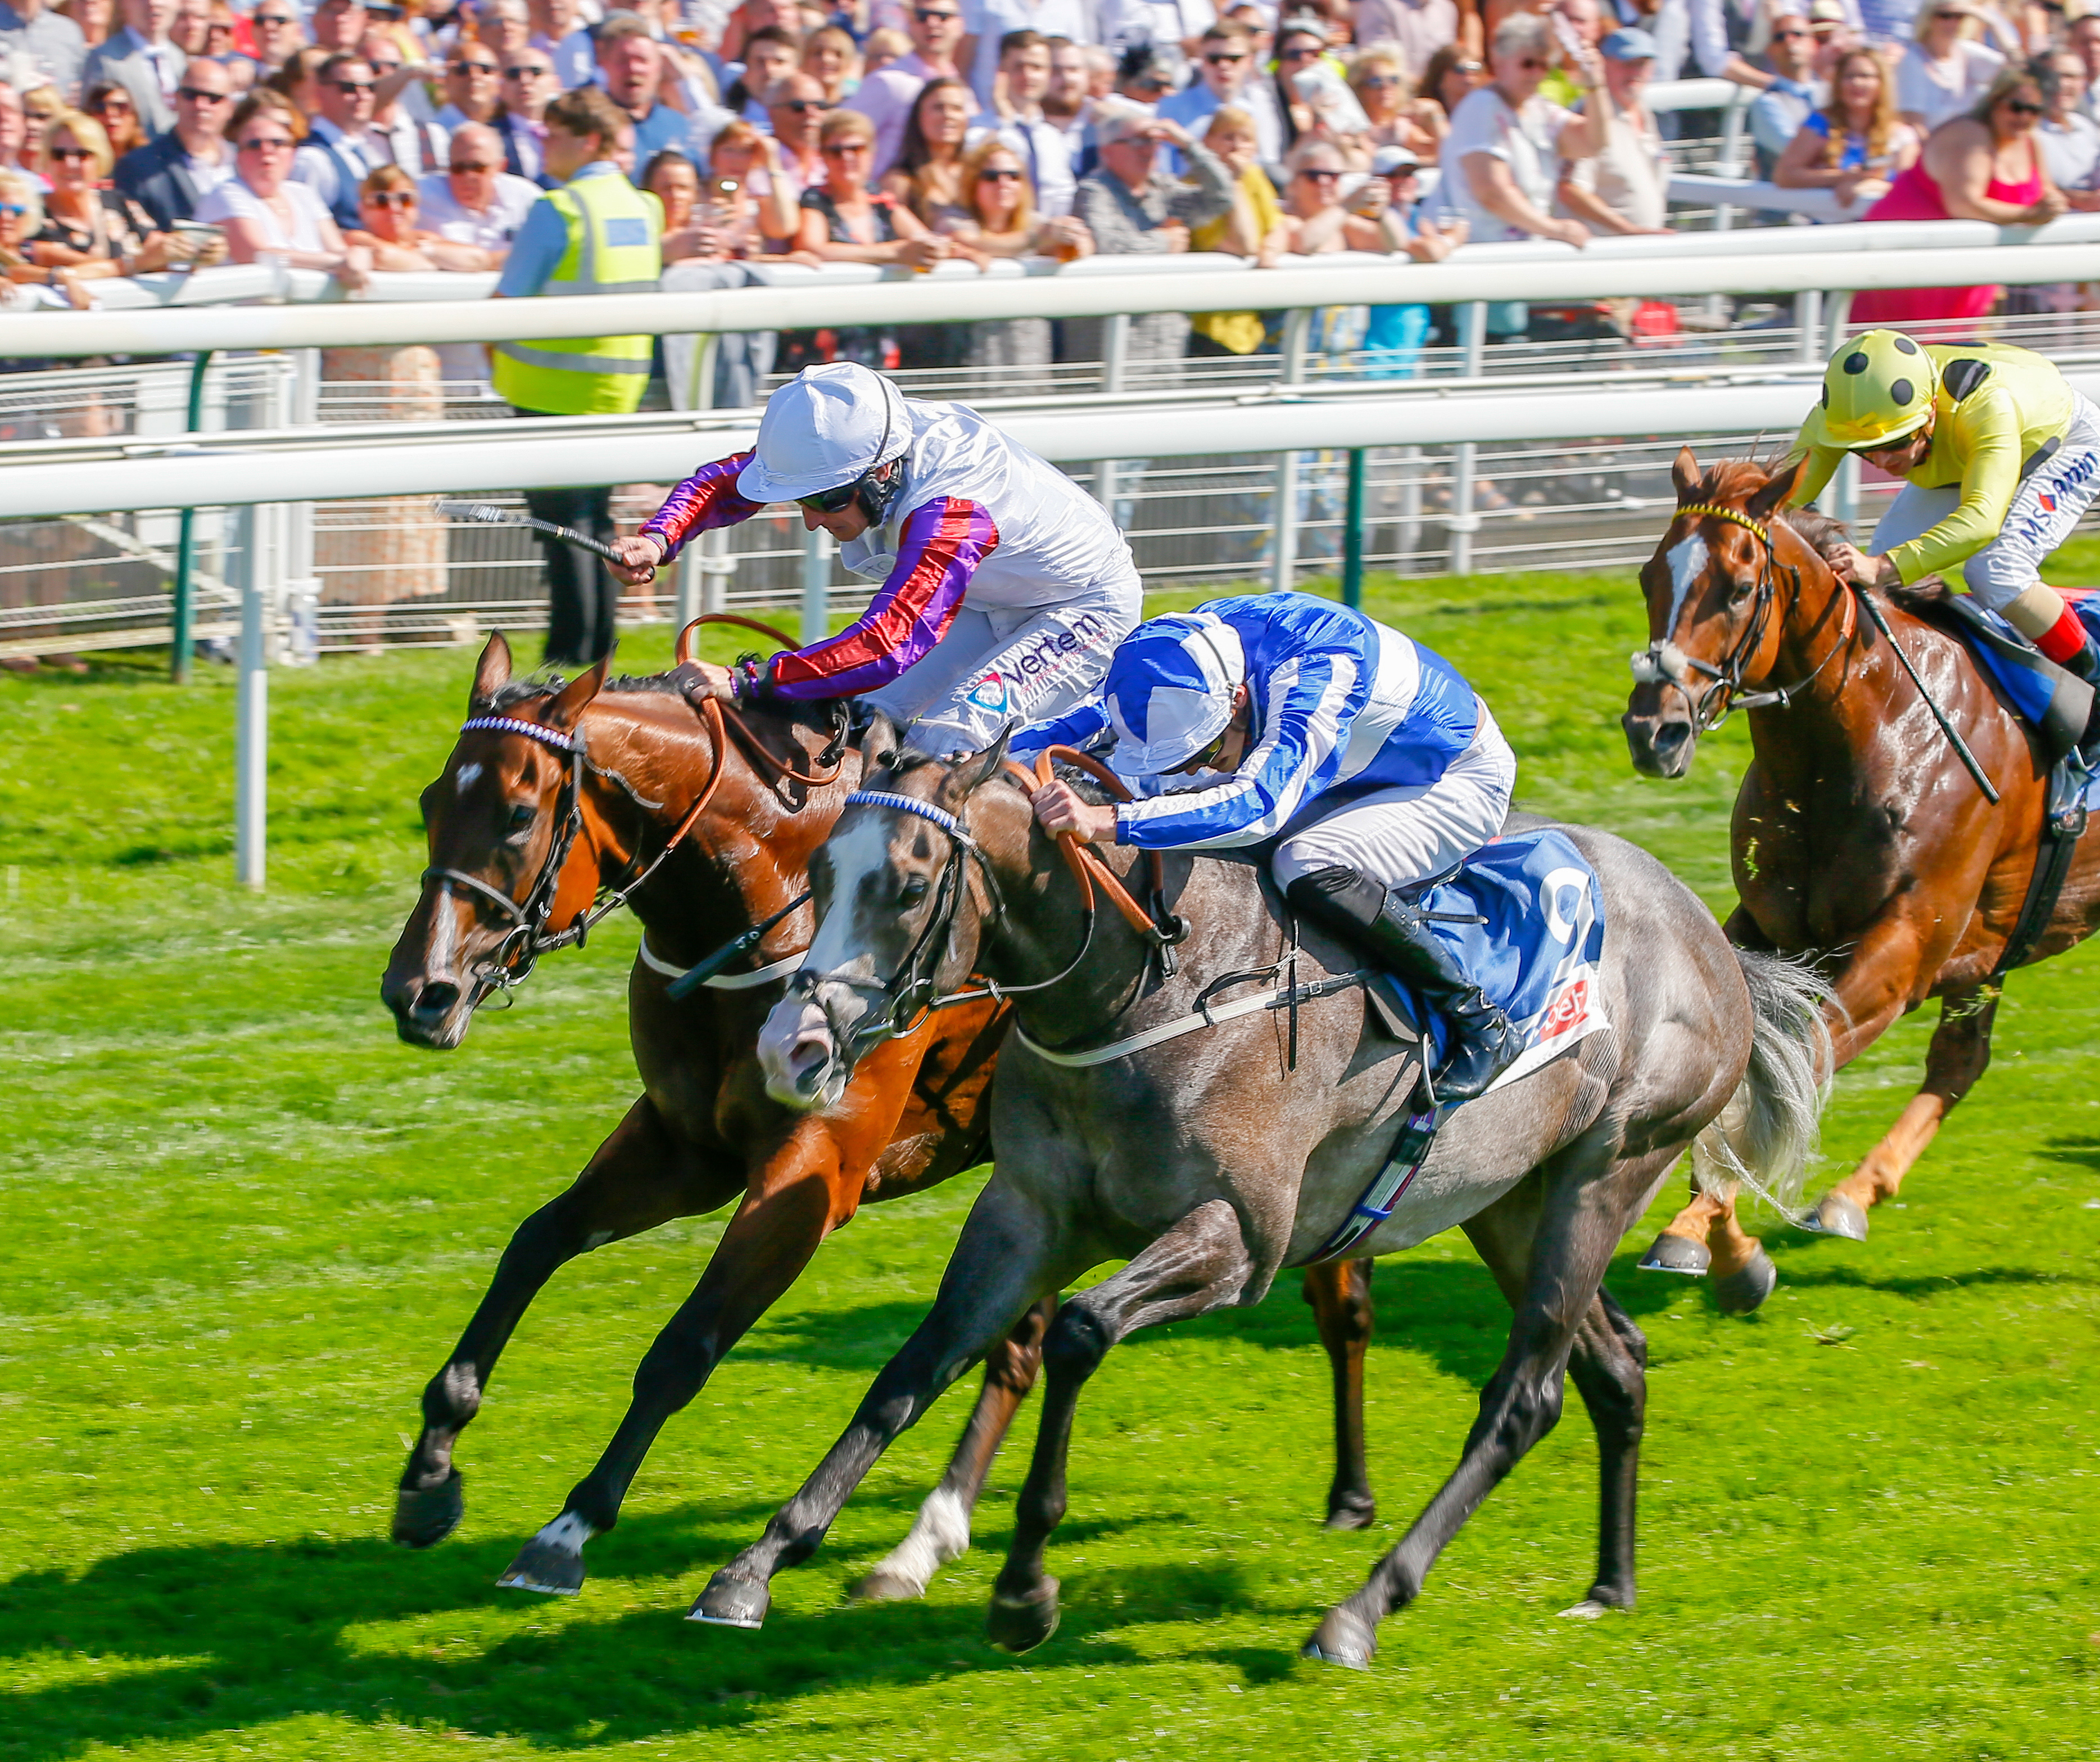 CITY OF YORK STAKES (GR2) - Shine So Bright s'offre Laurens et un ticket pour le Prix de la Forêt